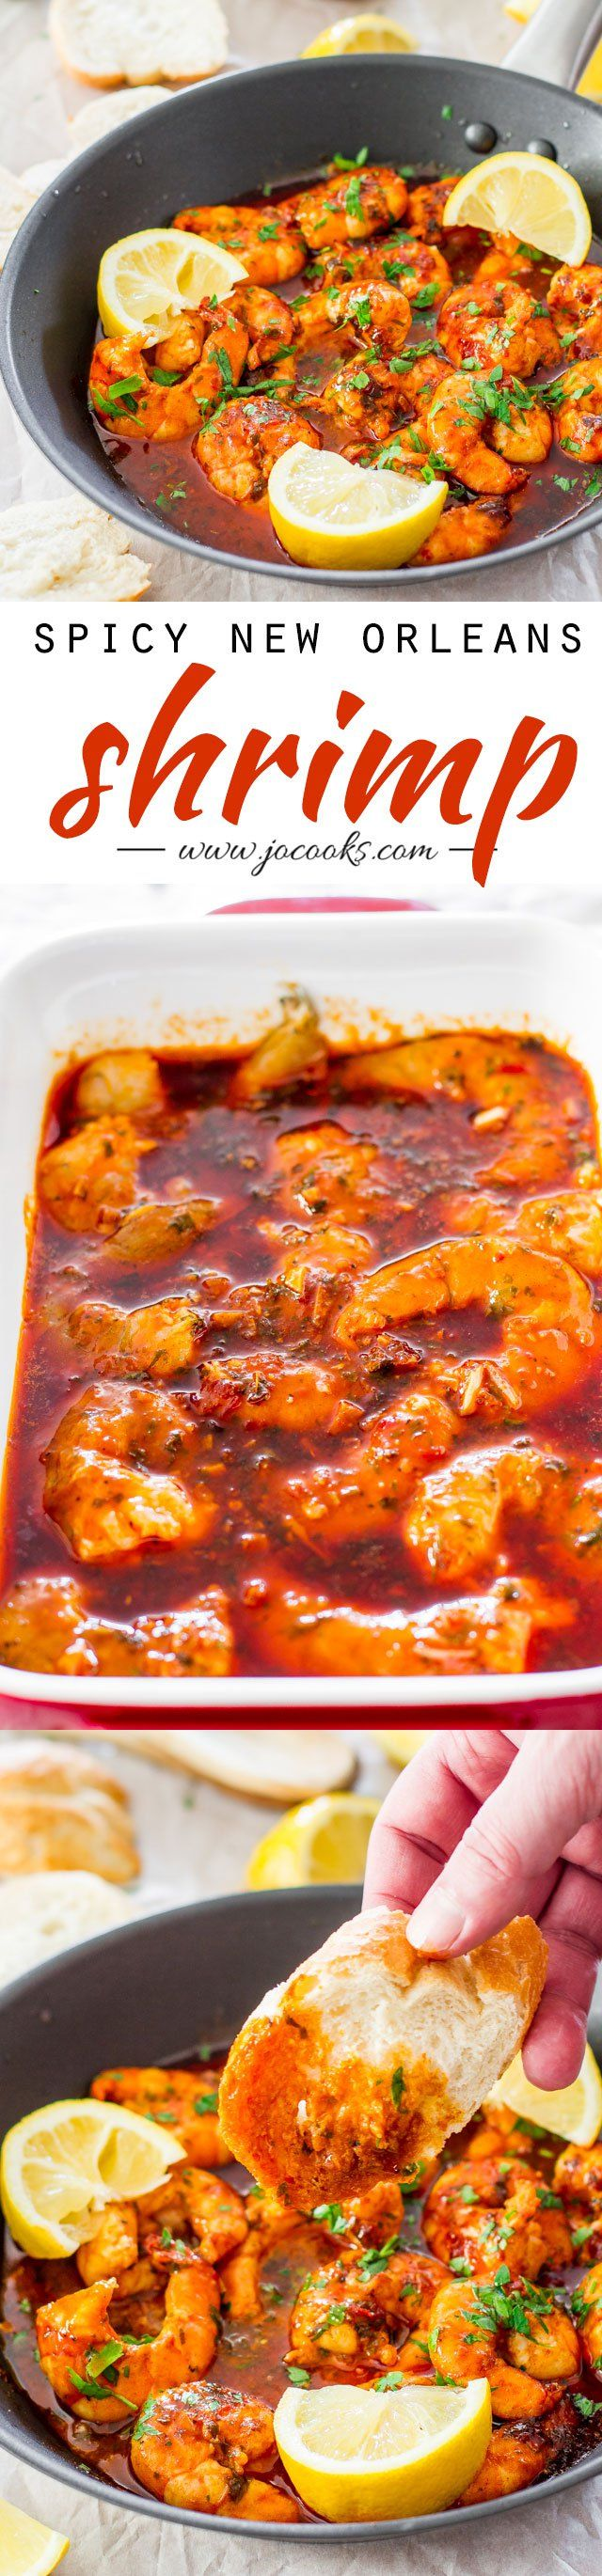 Spicy New Orleans Shrimp